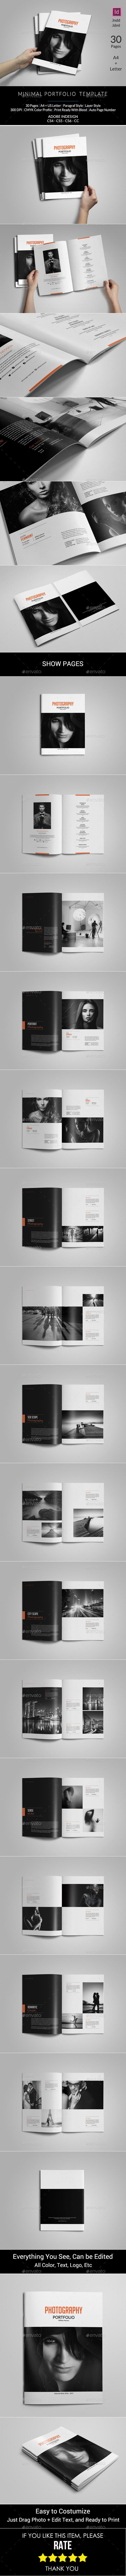 Photobook Template | Template, Photo album printing and Print templates